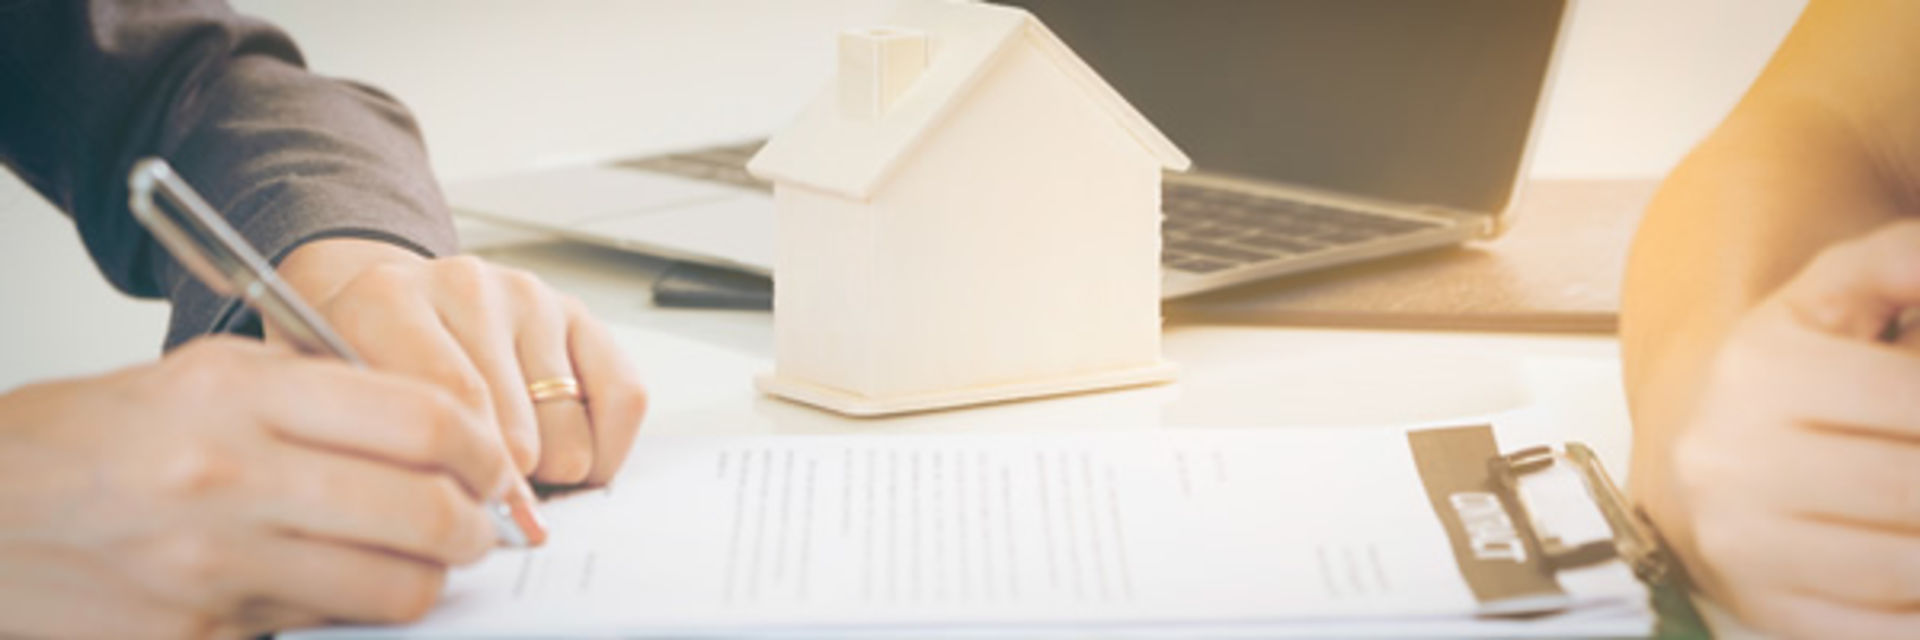 3 Important Aspects of the Purchase Agreement